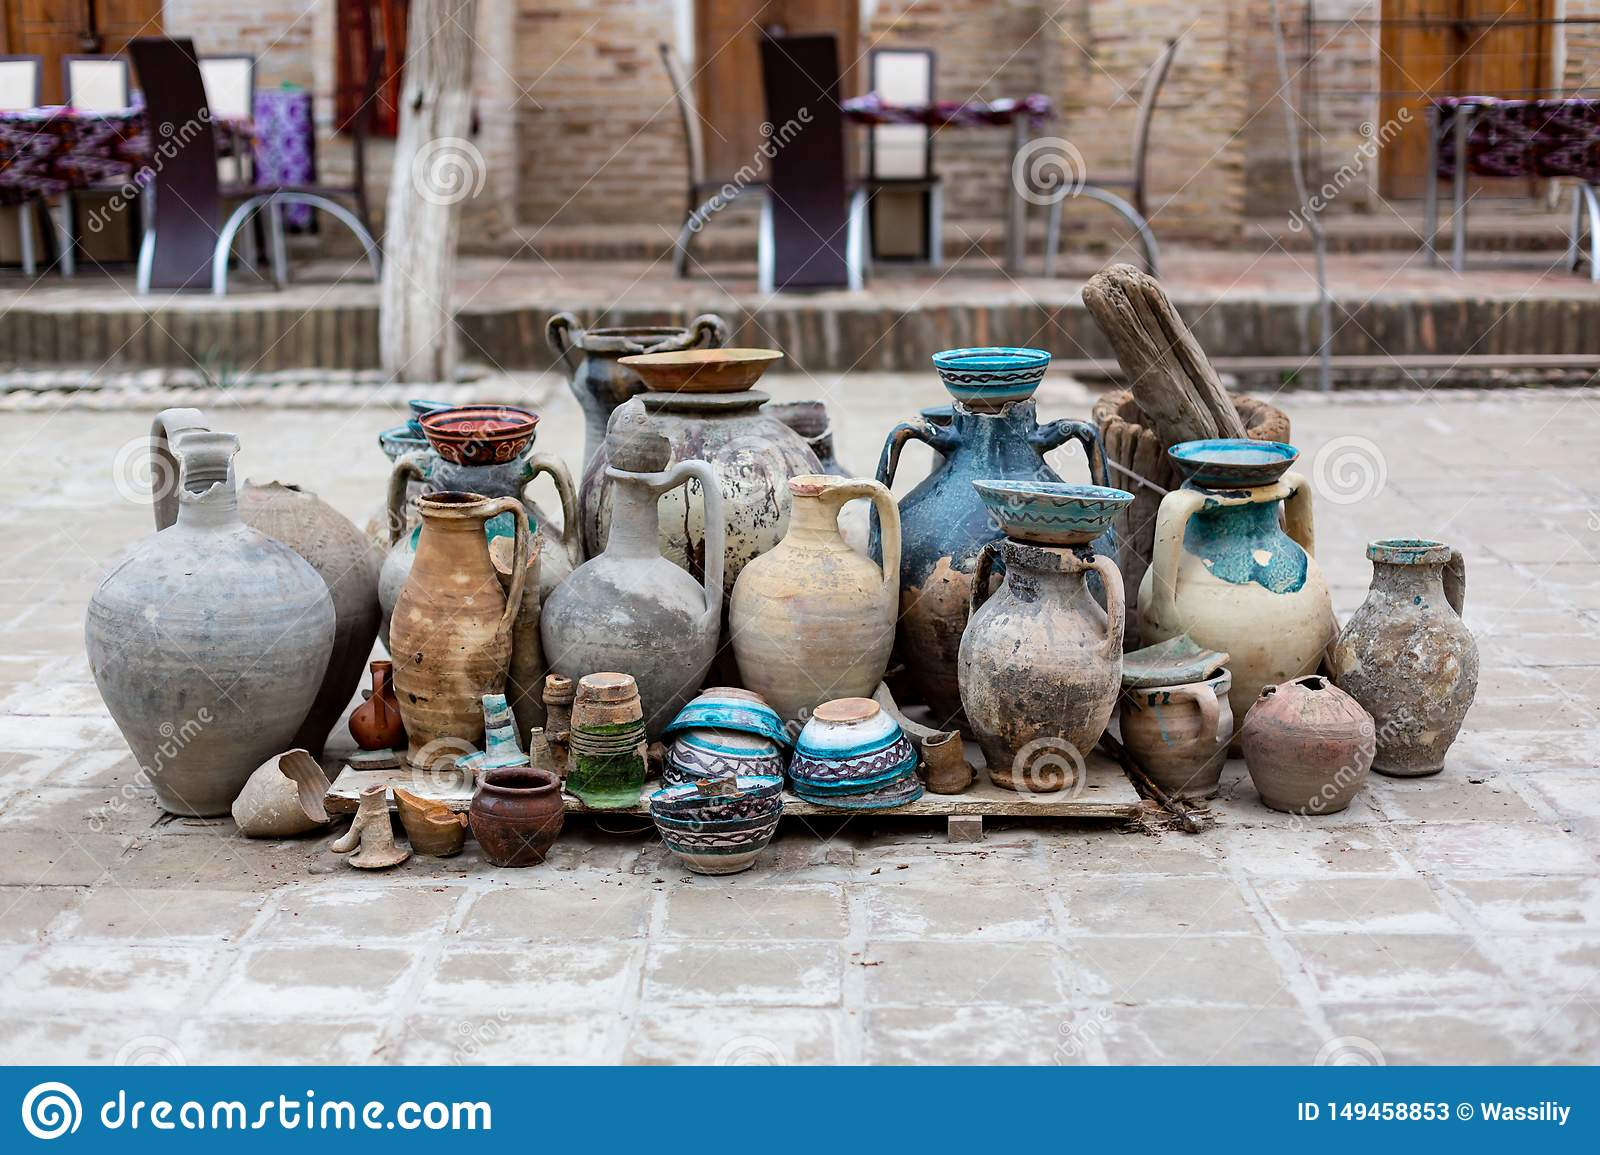 Natural Traditional Clay Pottery Beautiful Old Kitchen Appliances Dishes Jugs Vases Pots Mugs The Background Stock Image Image Of Beverage Handmade 149458853